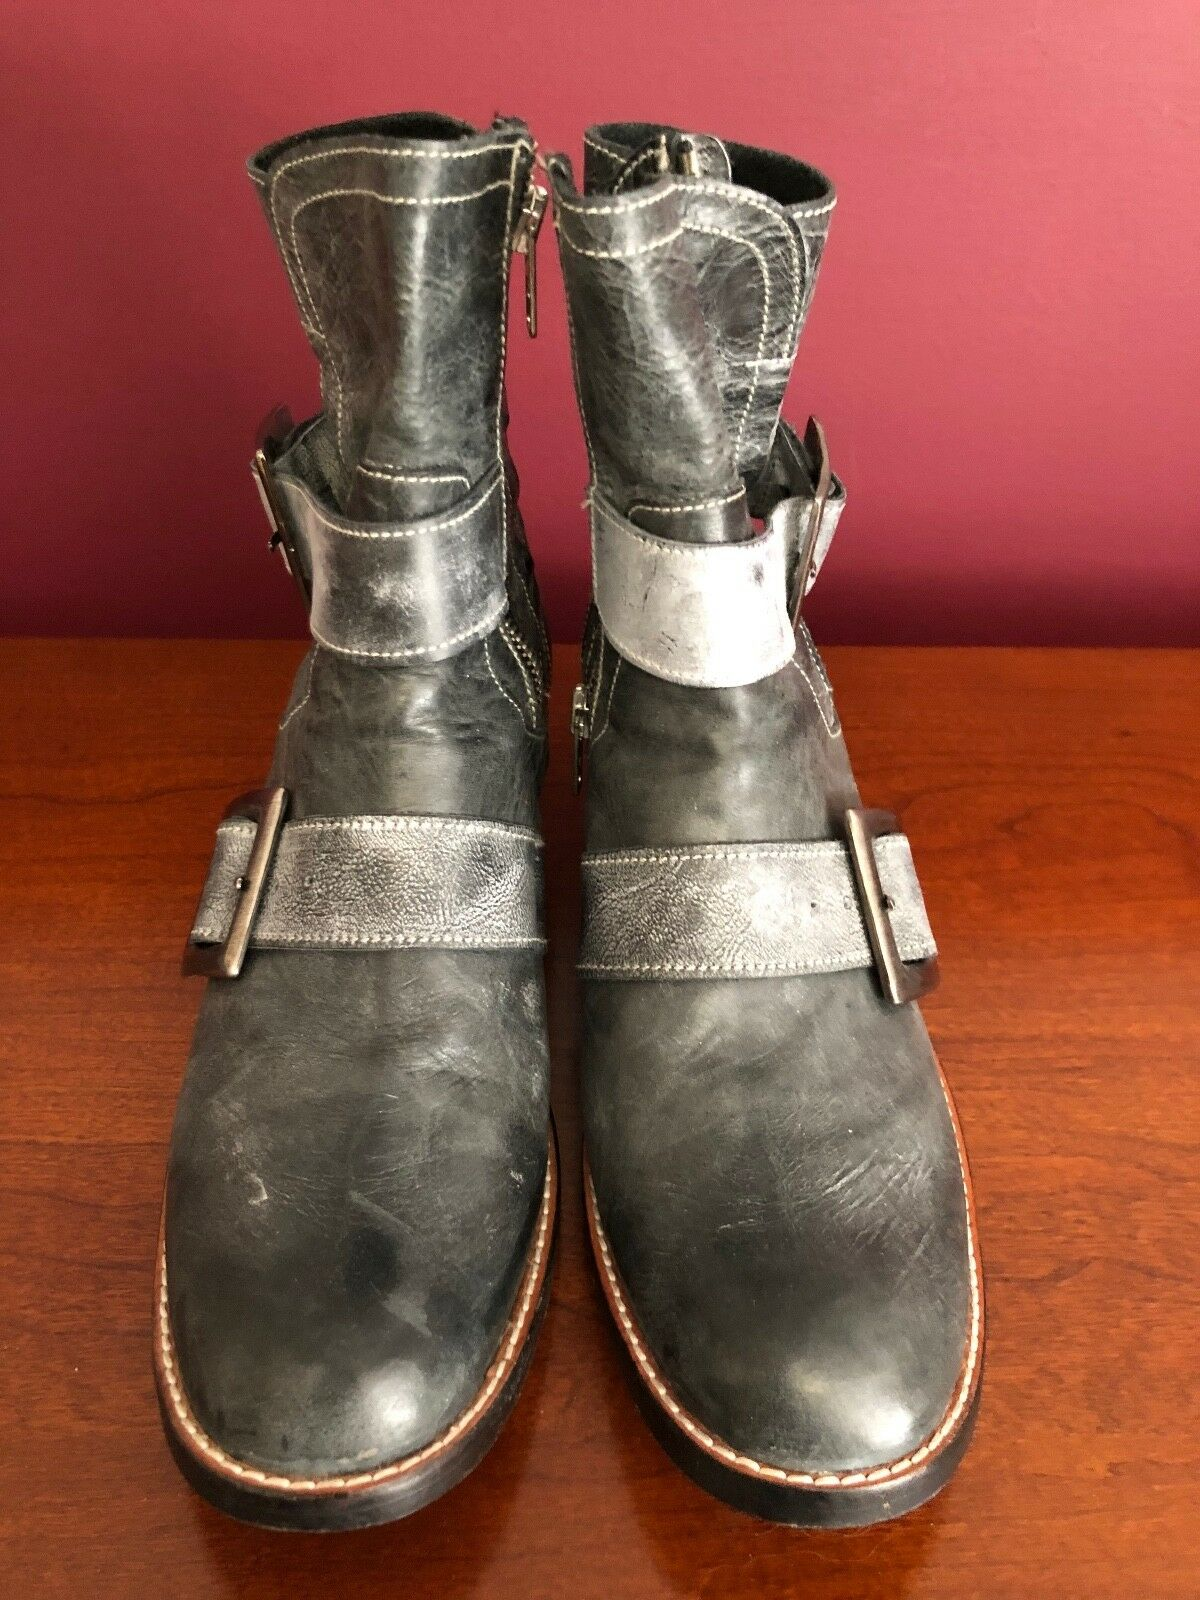 CORDANI calzature GREY Size 36.5 6US Leather Leather Leather Buckle Moto Style Boots d4759c